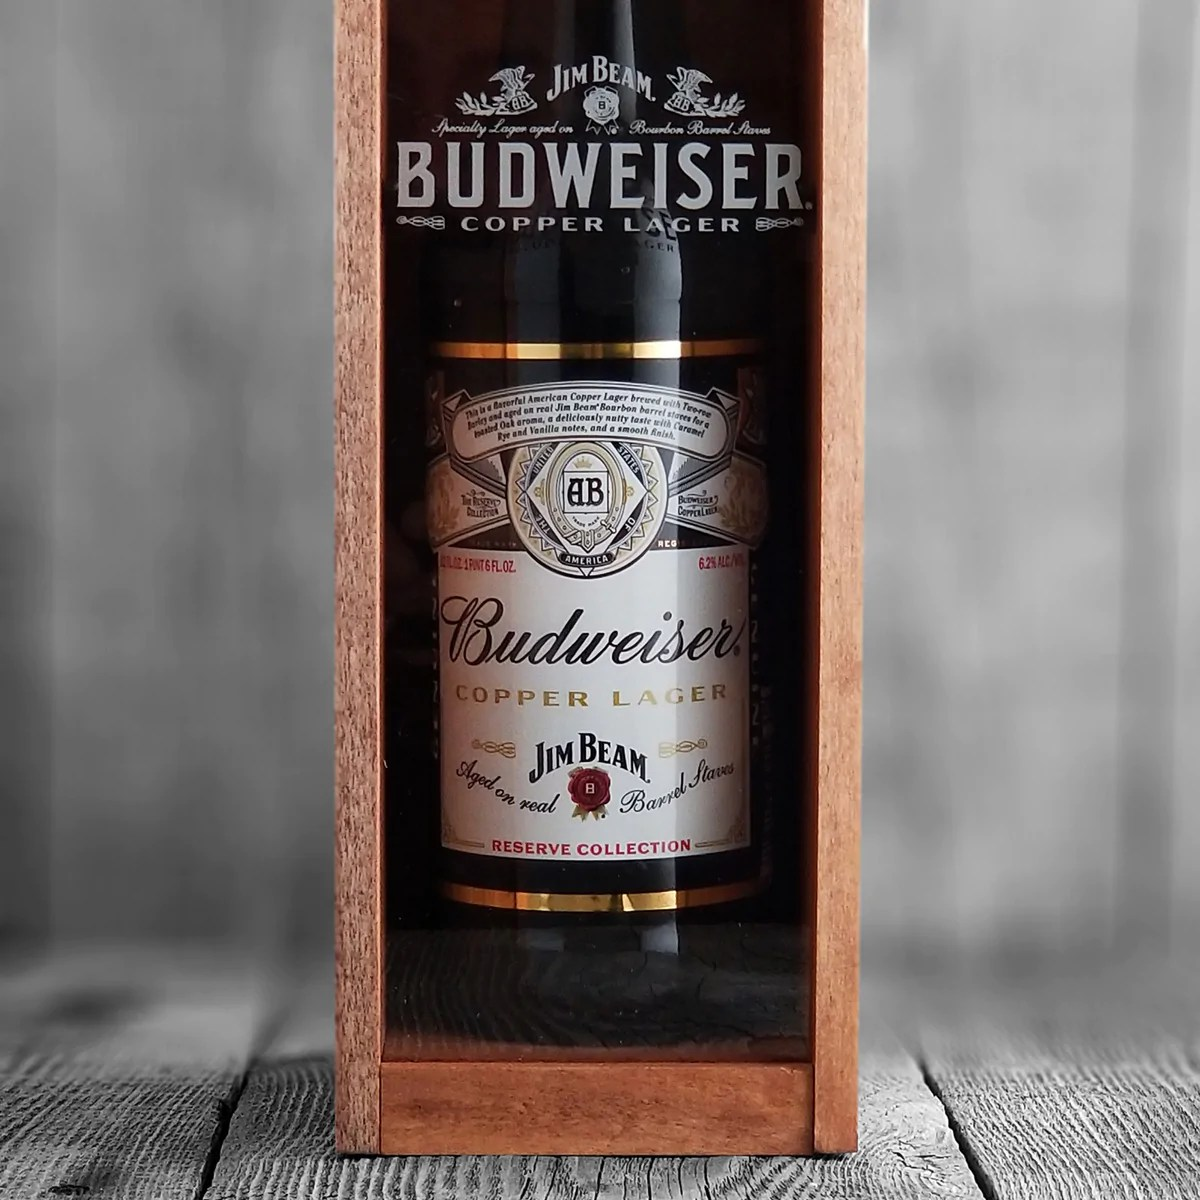 Budweiser Copper Lager Aged On Jim Beam Barrels Craft